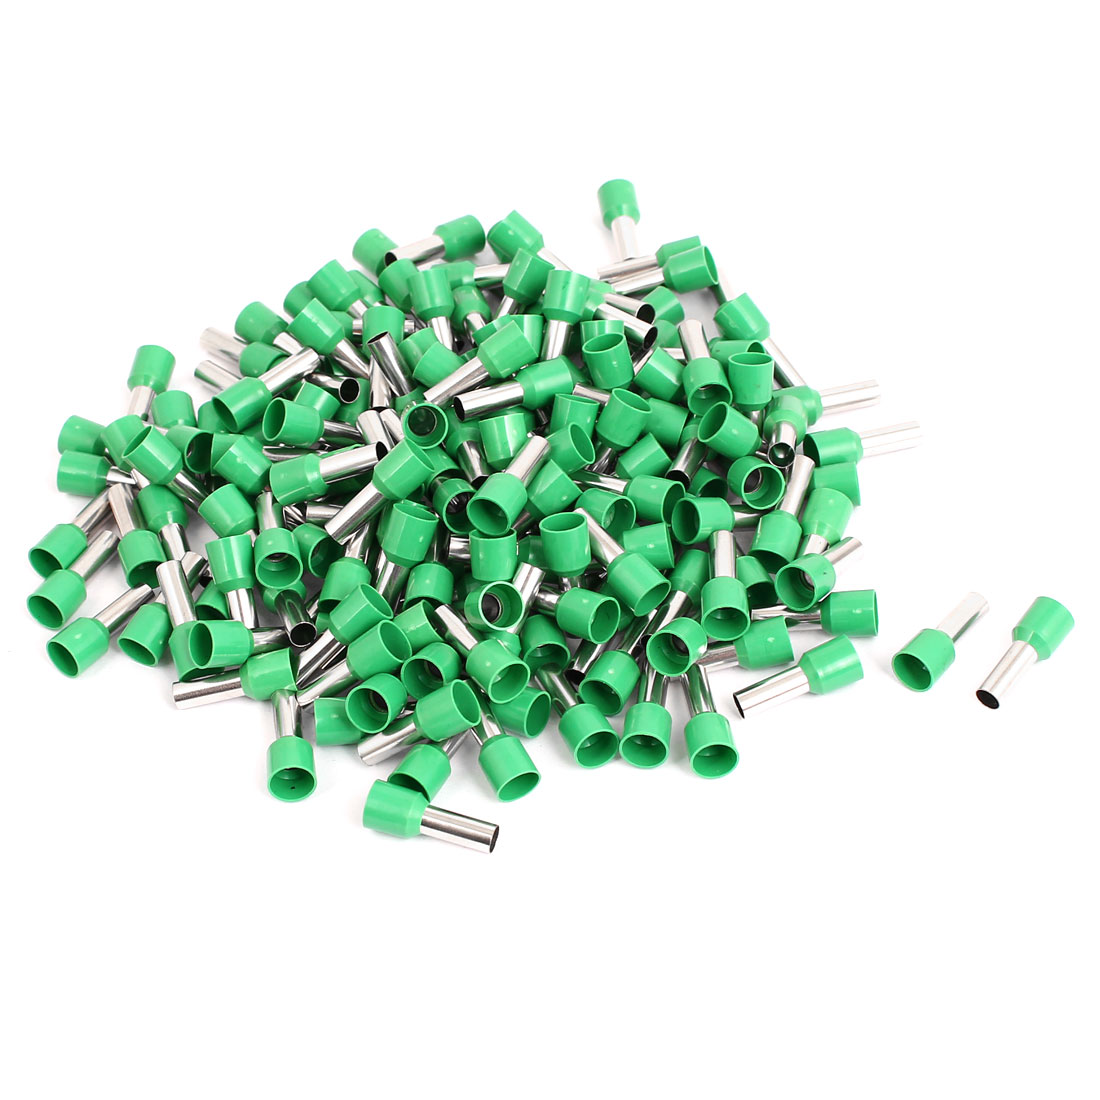 Green Cap 6mm2 Cable Crimp Connector Insulated Ferrule Cord End Terminal 230pcs